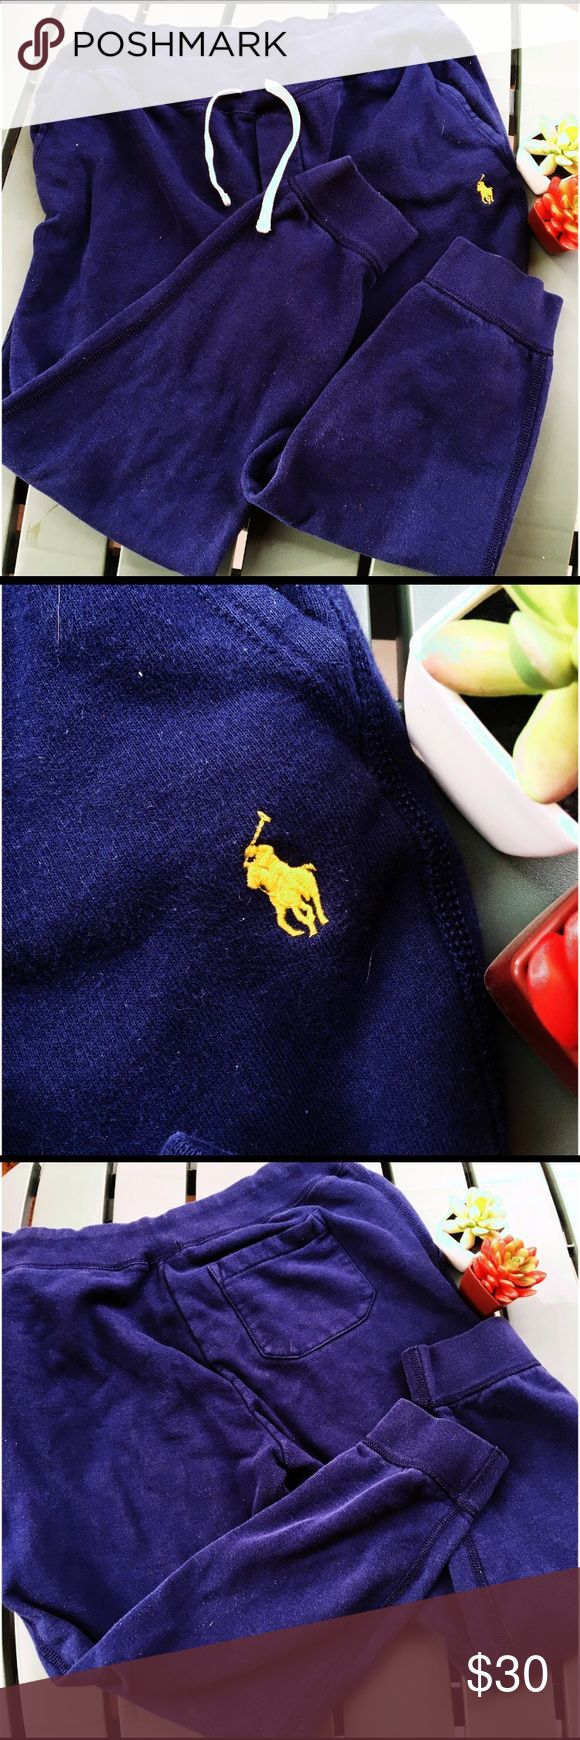 Polo Ralph Lauren Sweatpants Polo Ralph Lauren Men's Sweatpants. Color is navy blue with yellow RL emblem embroidered. Has pockets in the front, as well as one pocket in the back. Good used condition, however they are a little linty. Please note that this item is used and may show signs of previous use/wash. Polo by Ralph Lauren Pants Sweatpants & Joggers